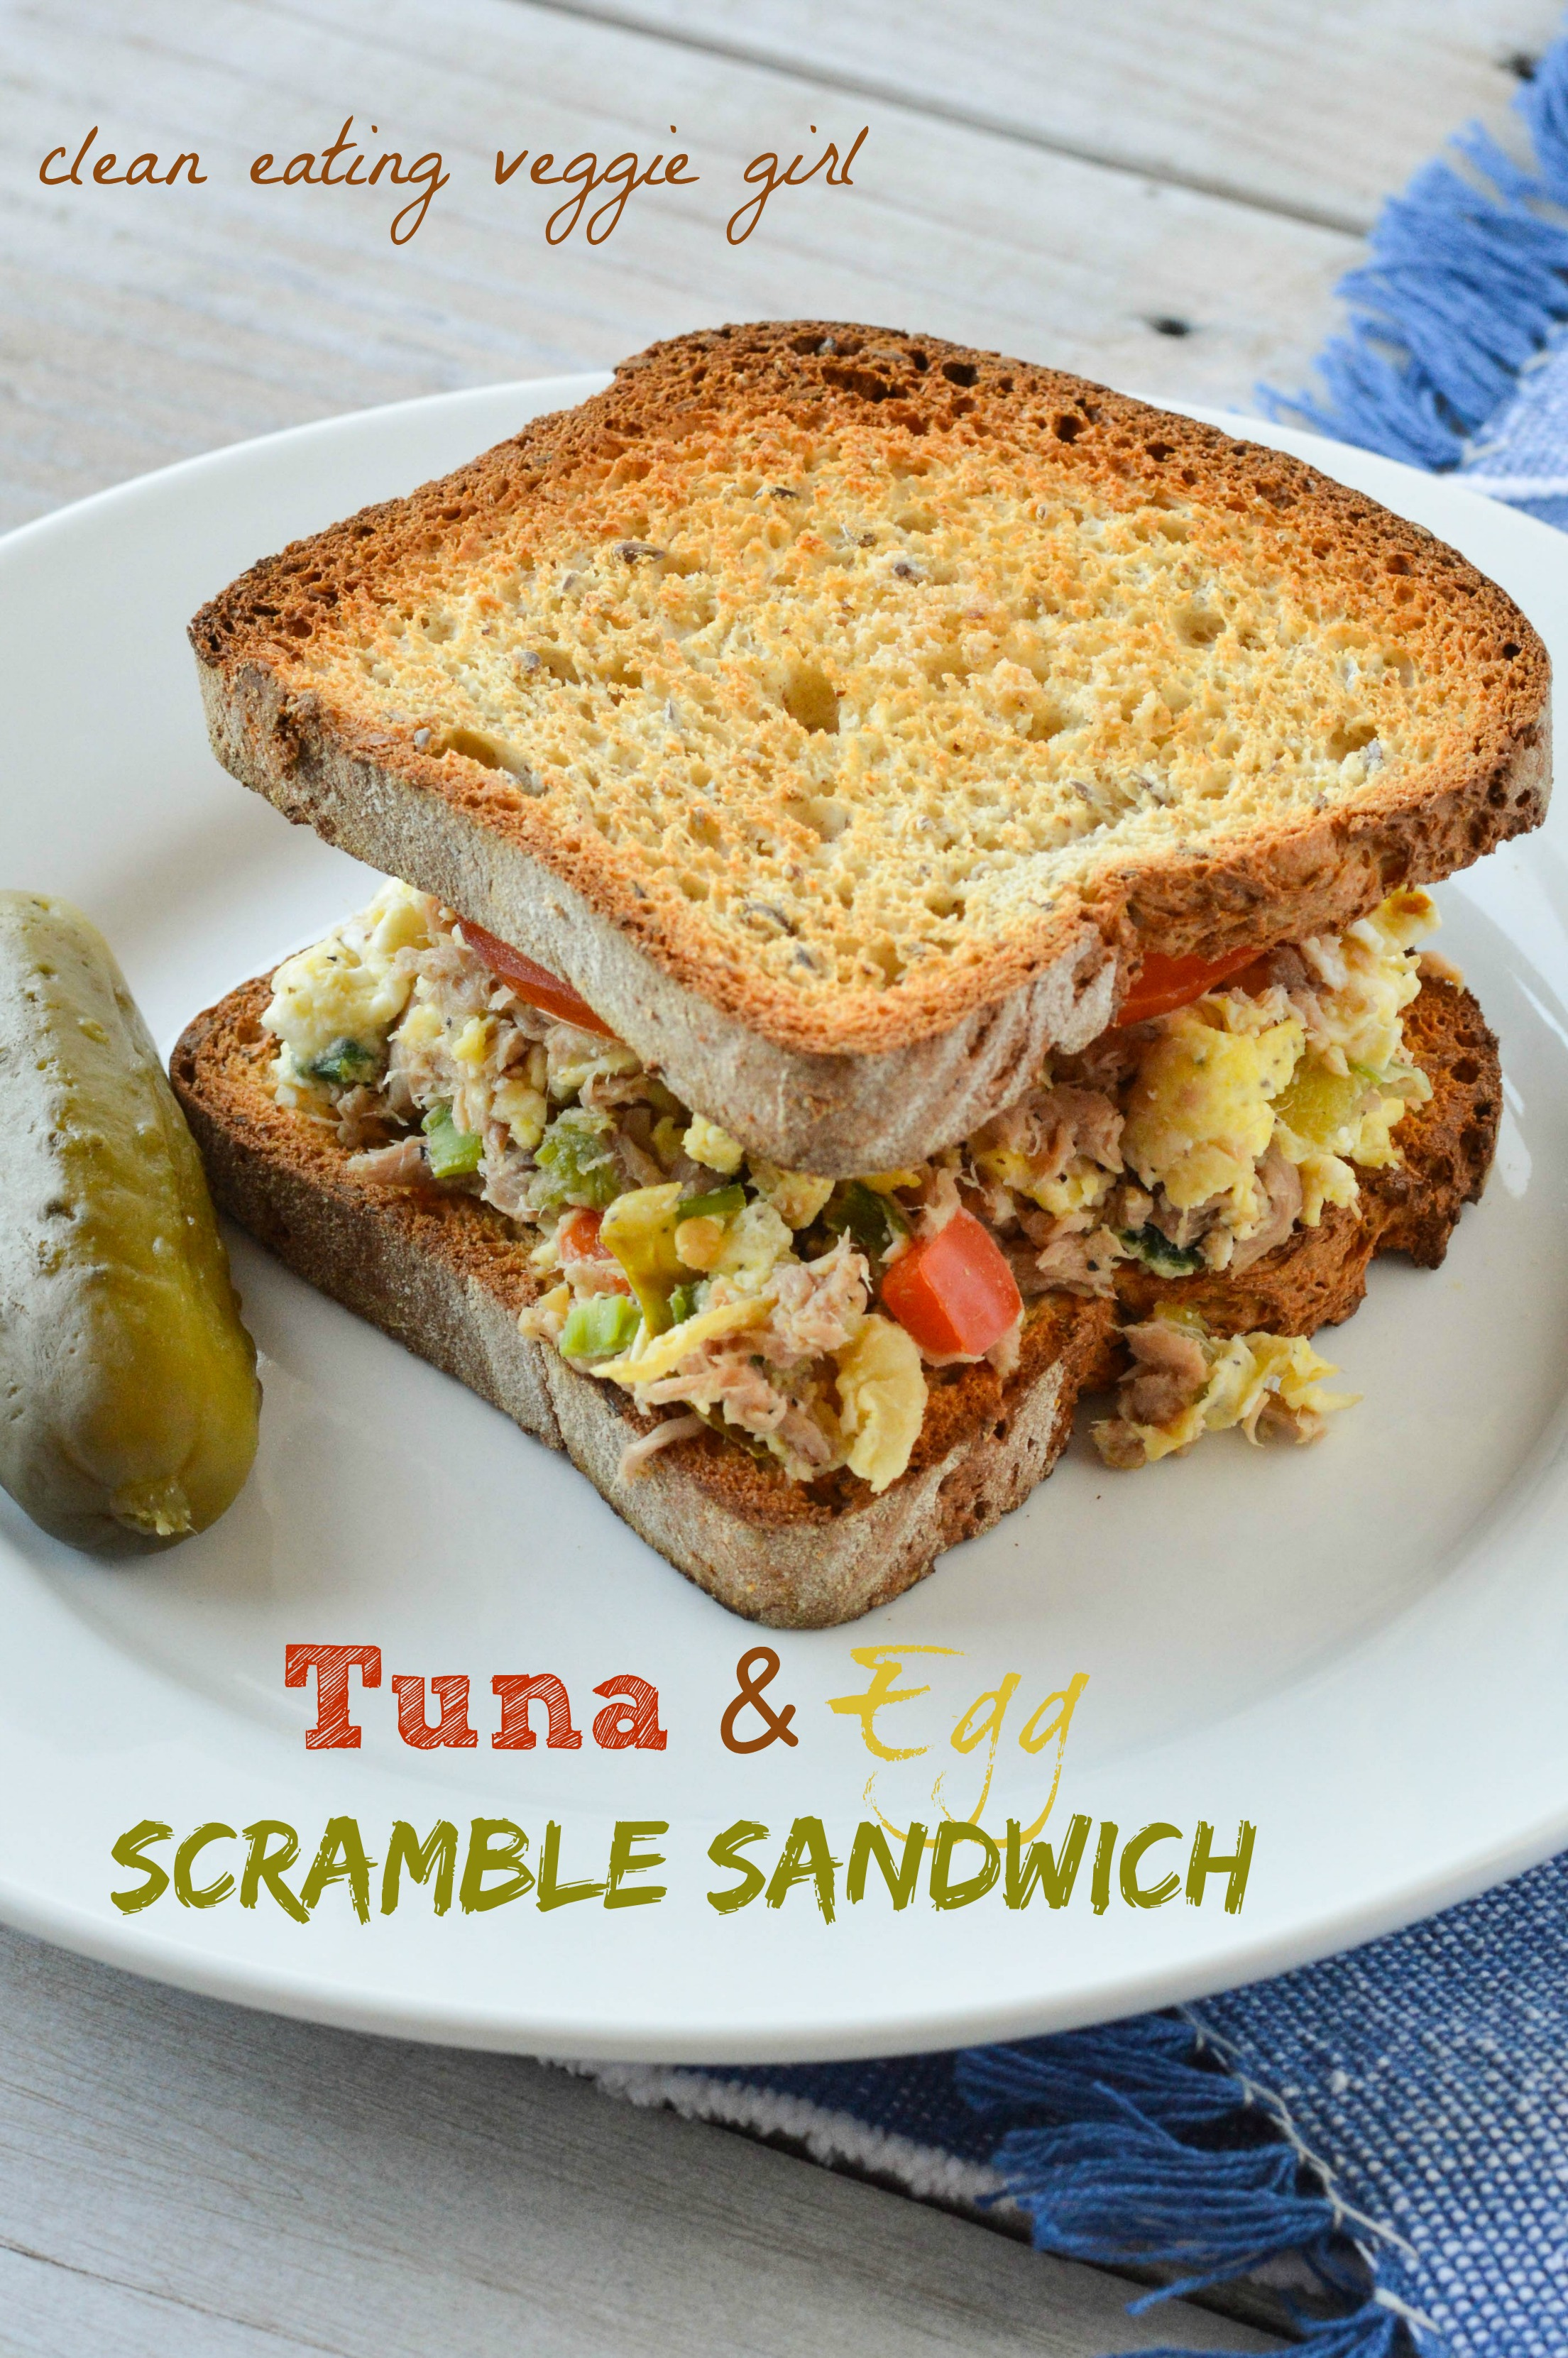 Tuna Fish Salad Recipe With Egg Of Tuna And Egg Scramble Sandwich